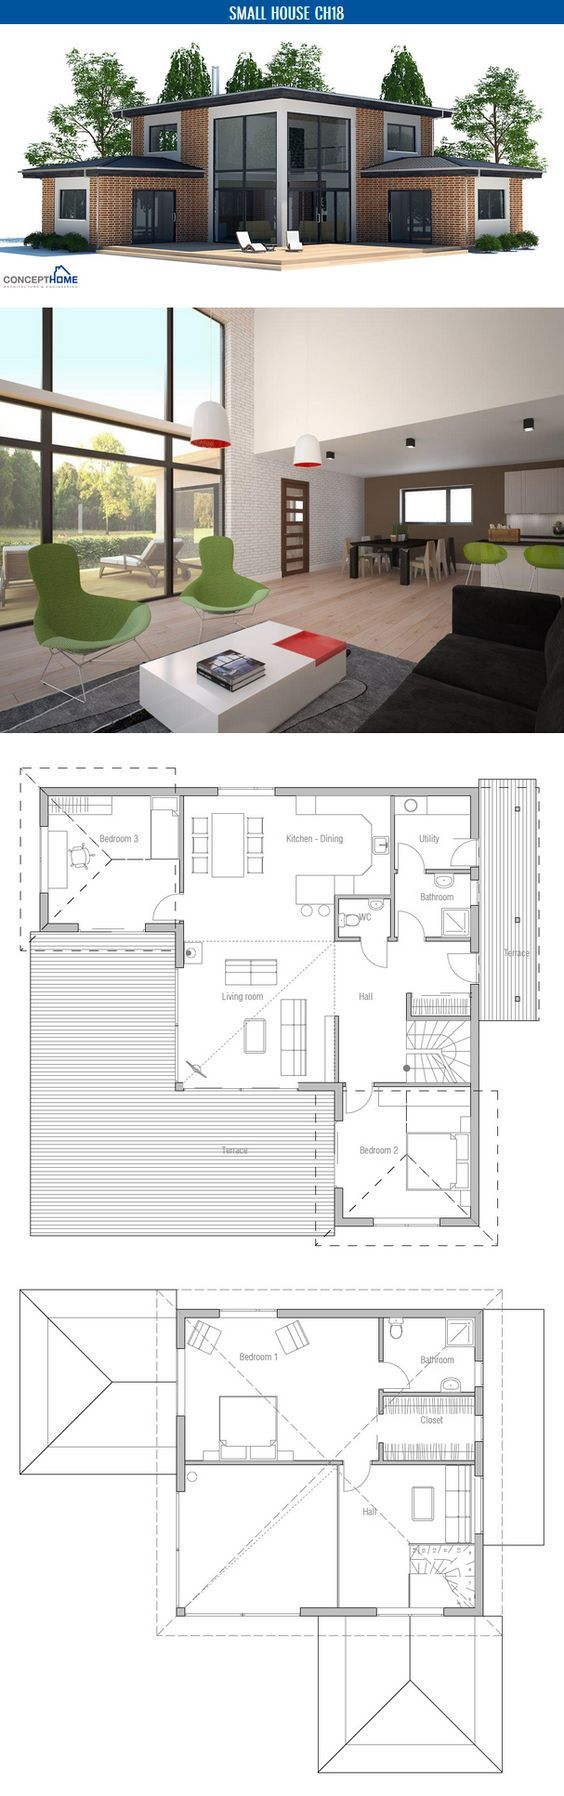 Container house small plan with three bedrooms and two living areas second area on the floor very popular home design also dheyaa abaas pinterest rh